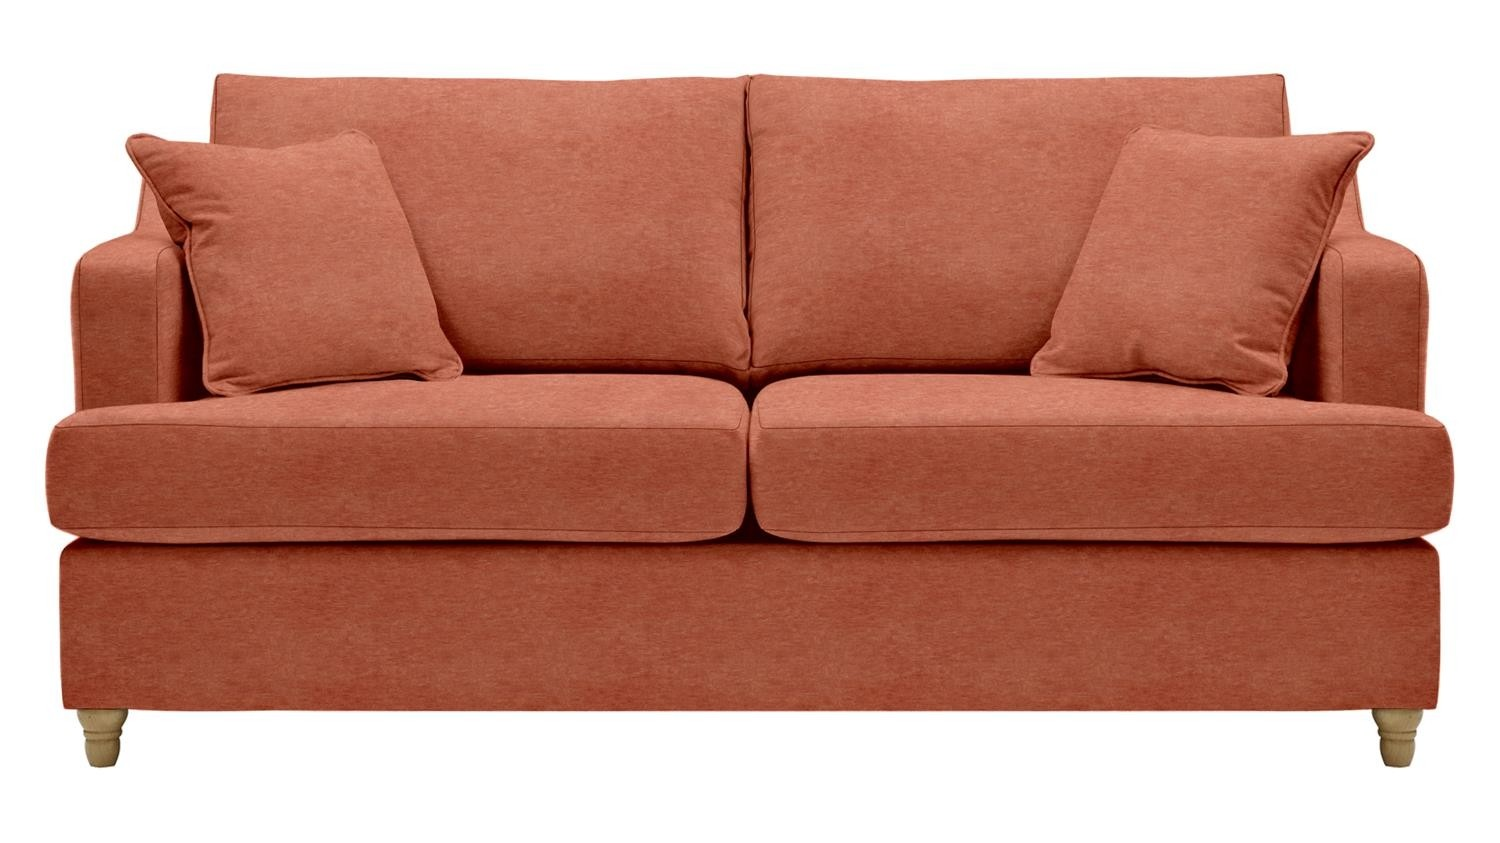 The Atworth 3 Seater Sofa Bed